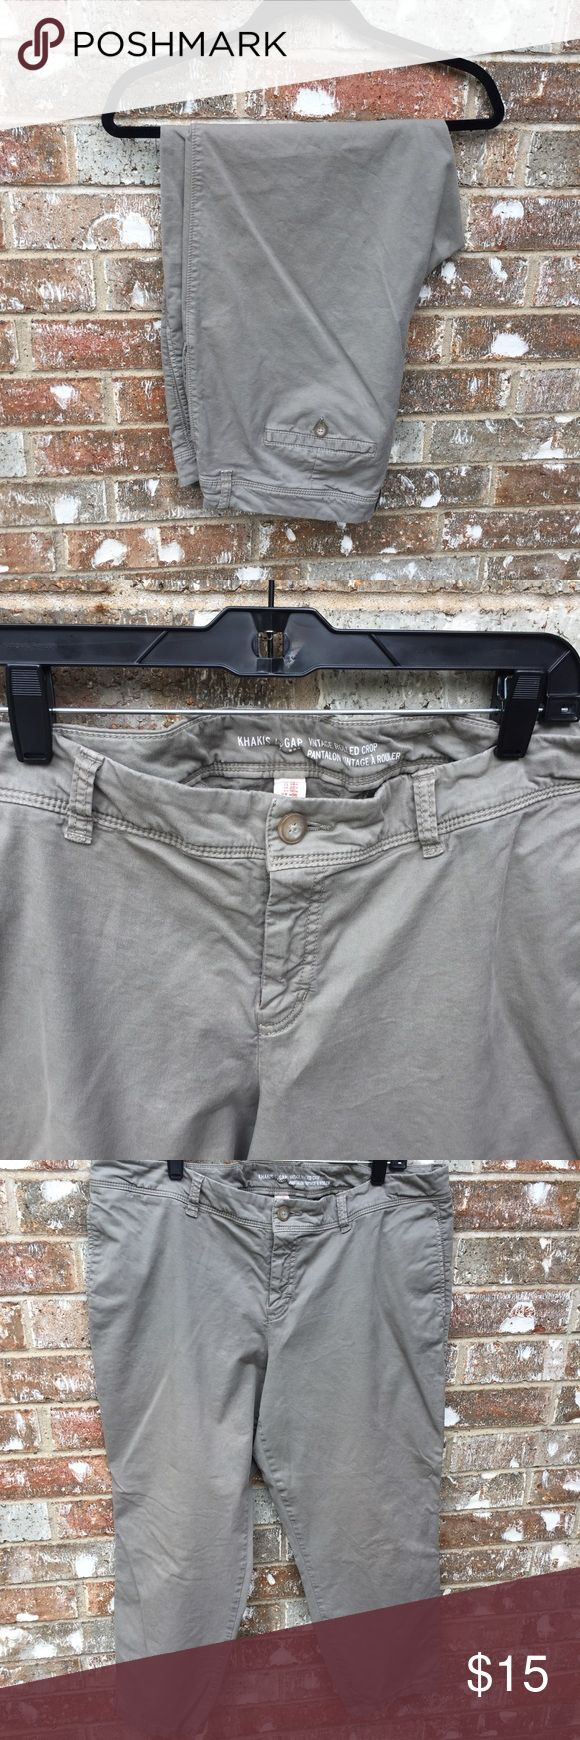 Gap Outlet Olive-Khaki Rolled Crops Really cute and in EUC. These are size 18 from Gap Outlet. Ankle/Crop rolled hem can be left down too. Sort of an olive/Khaki blend of color. GAP Pants Ankle & Cropped